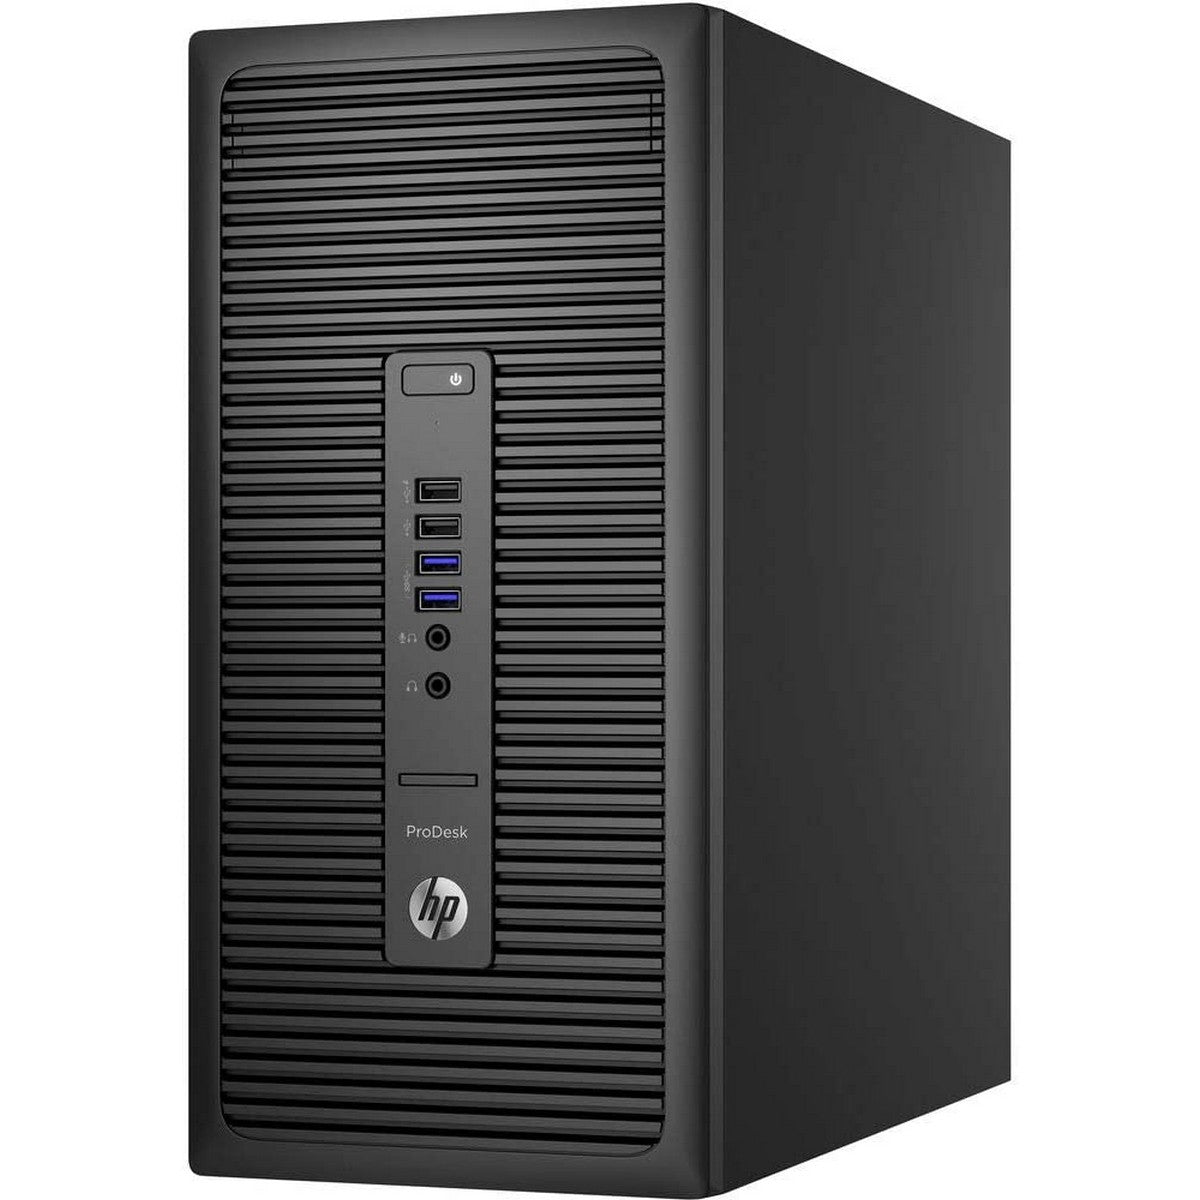 Used HP ProDesk 600G2 Tower Desktop, Intel Core i7 i7-6700, 4GB RAM, 500GB HDD